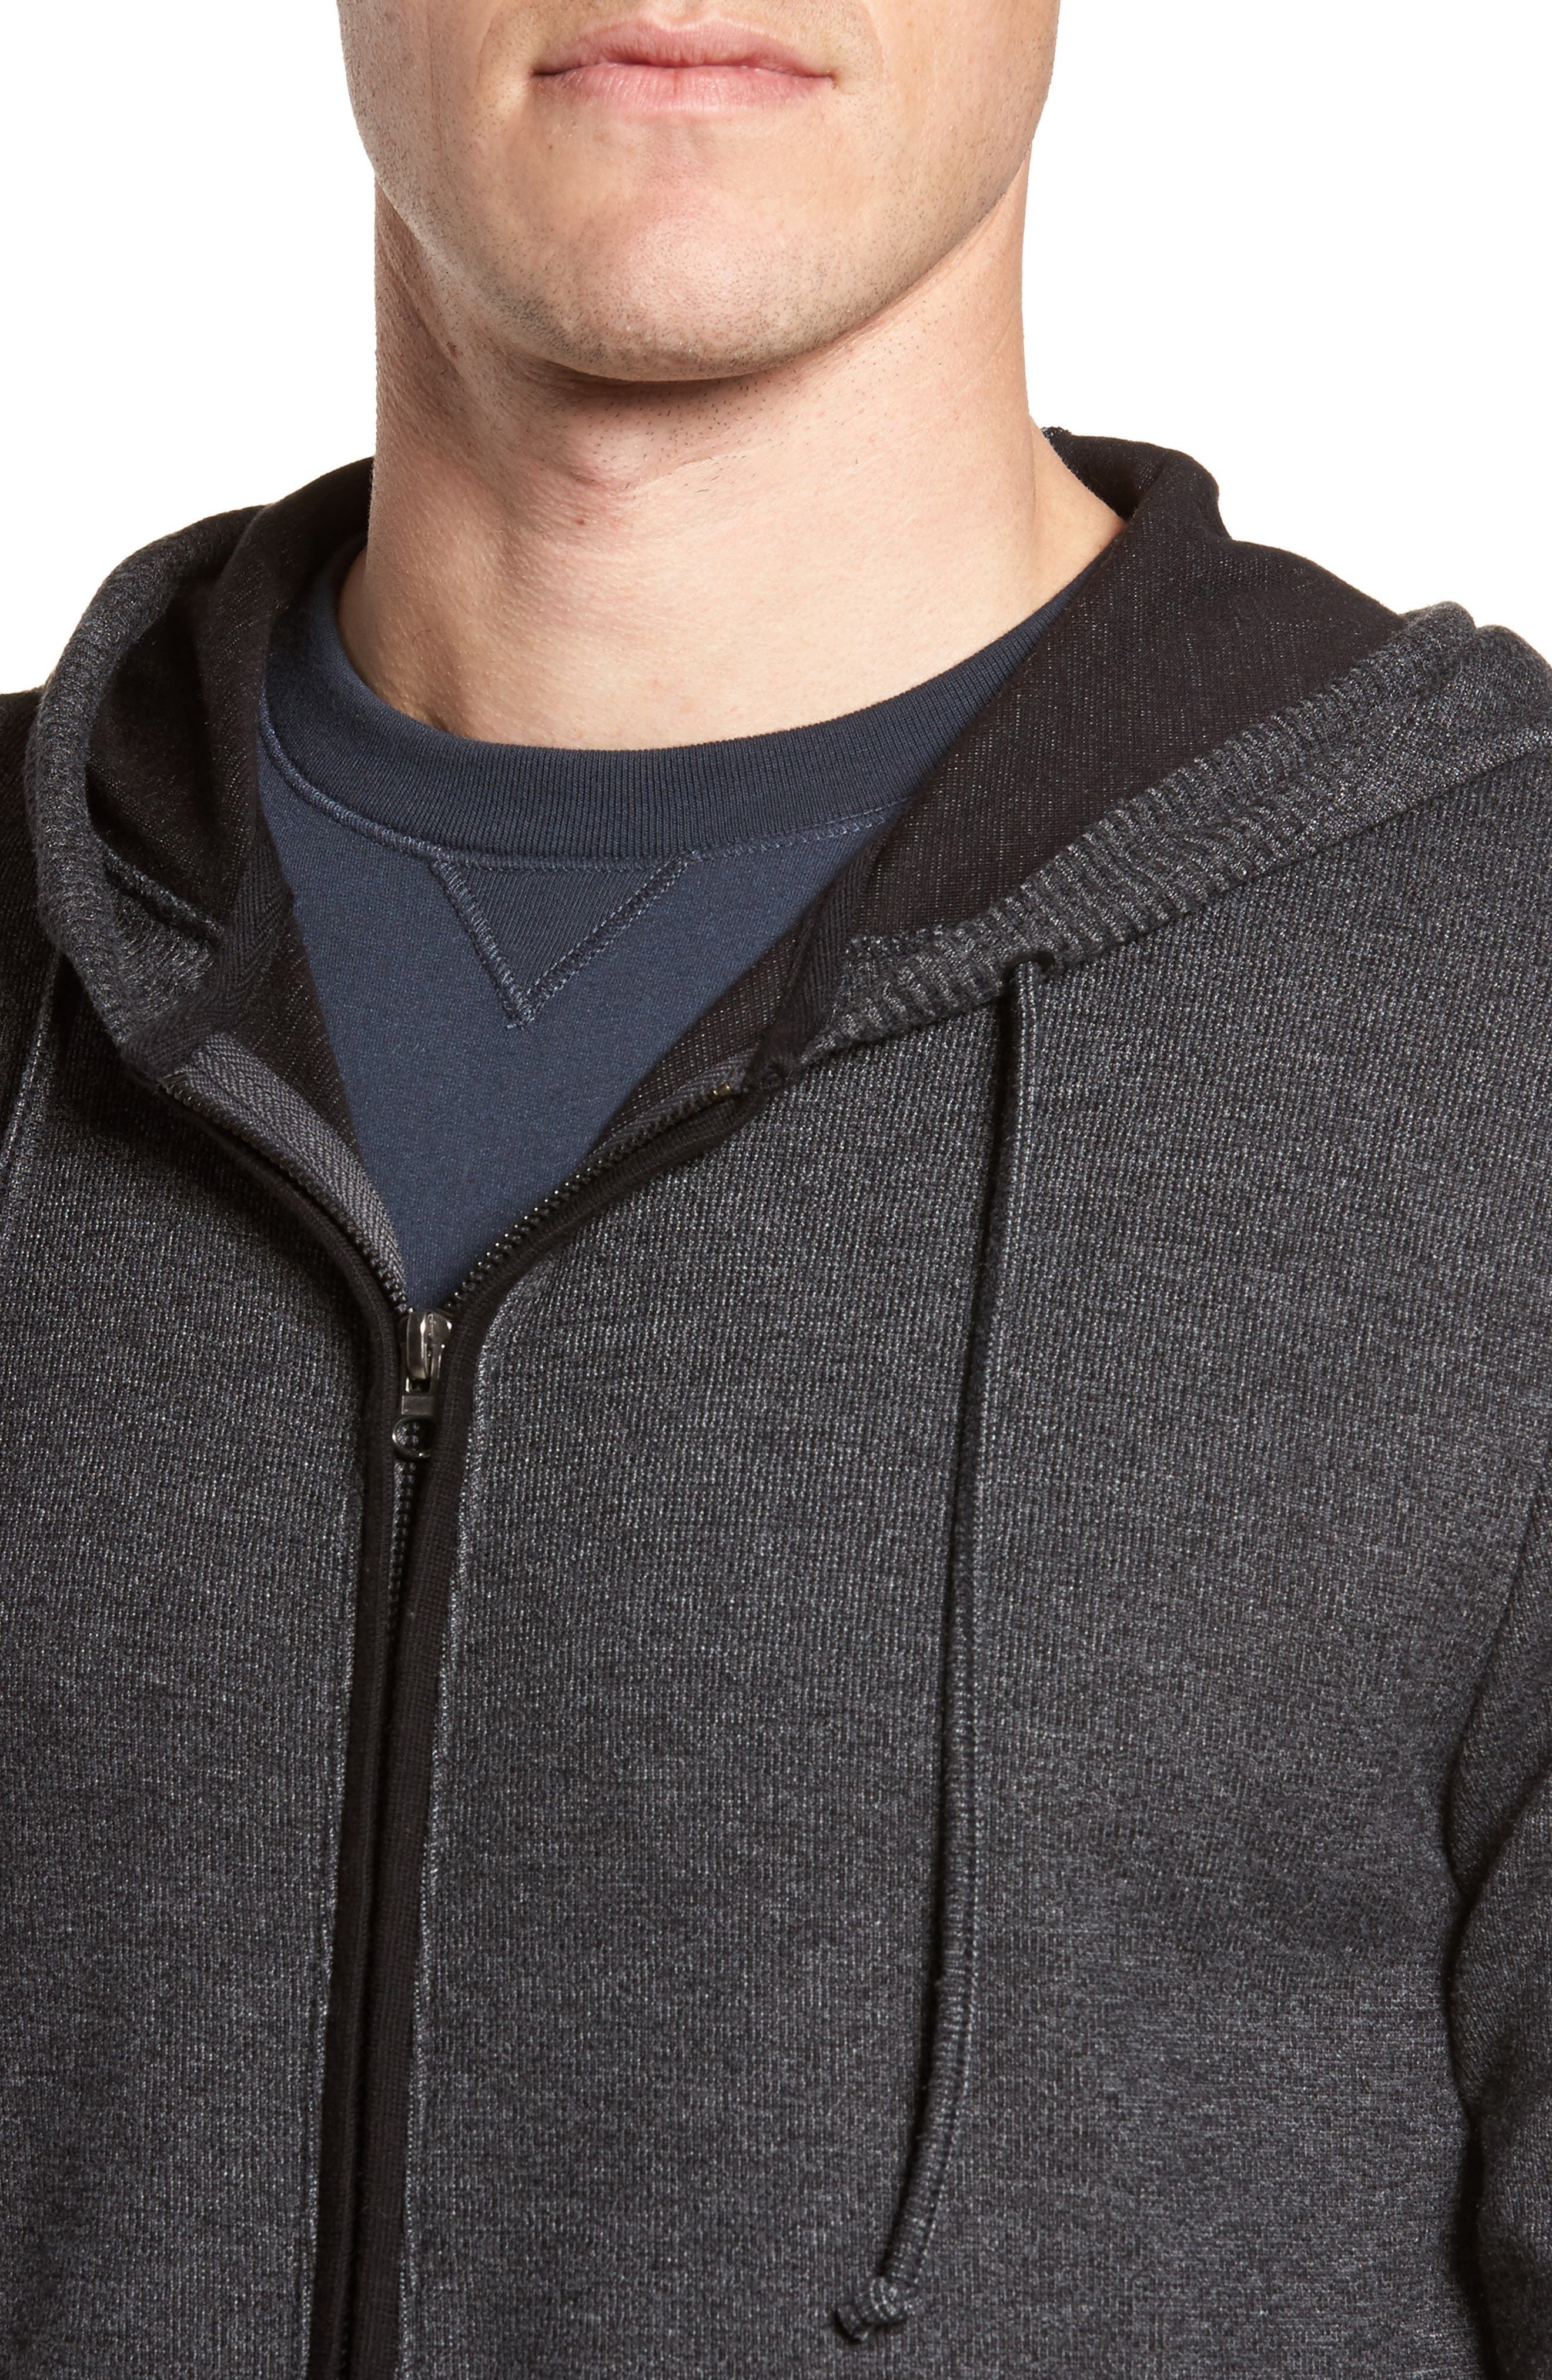 Snare Zip Front Hooded Cardigan,                             Alternate thumbnail 4, color,                             001